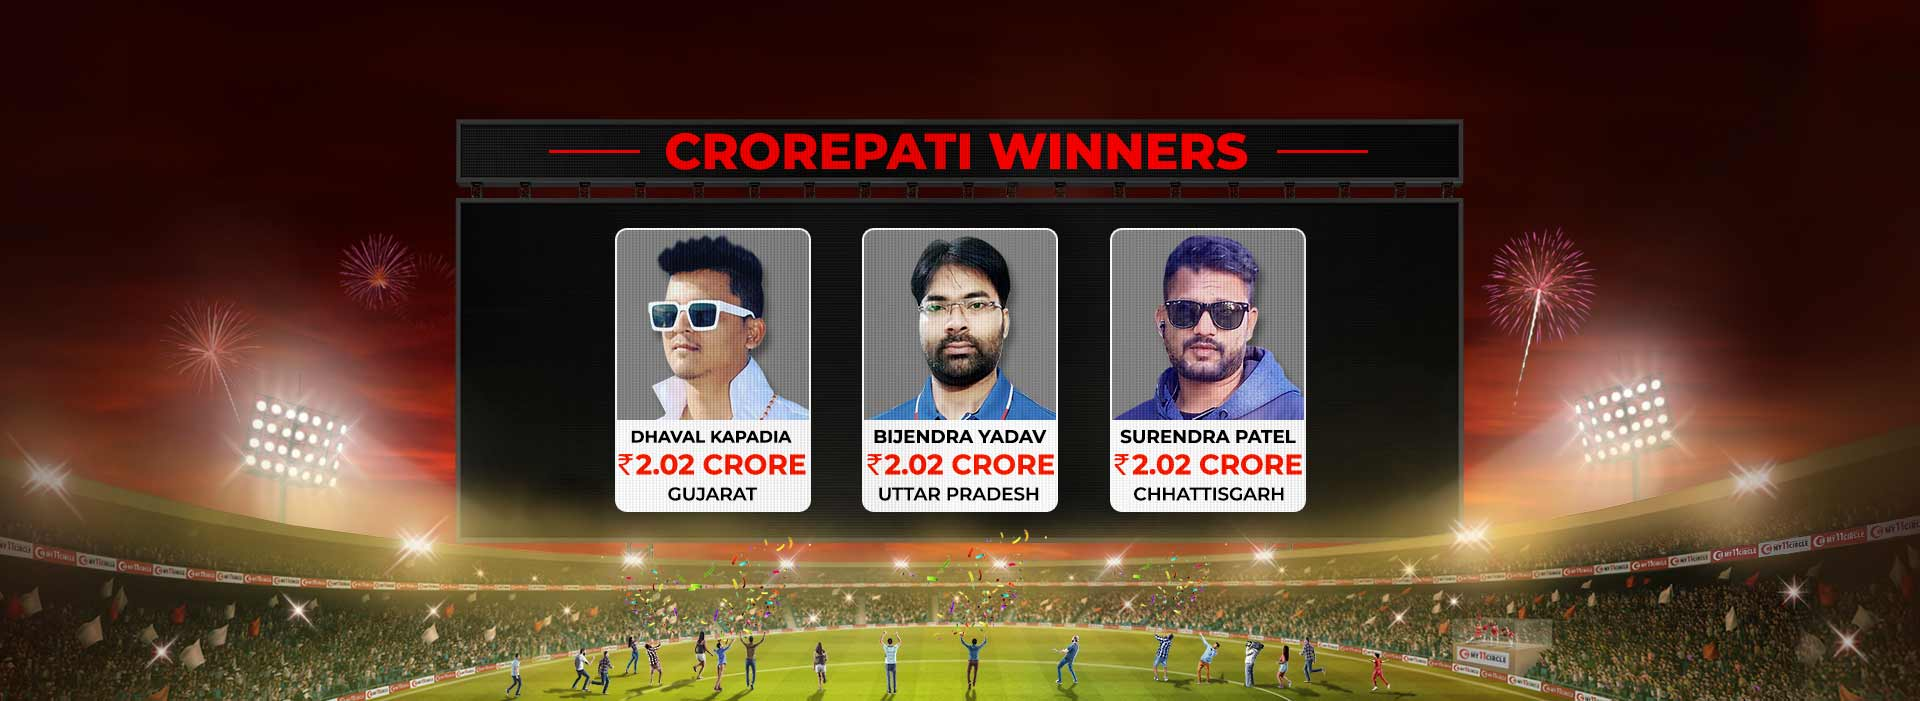 Weekly Crorepati Winners